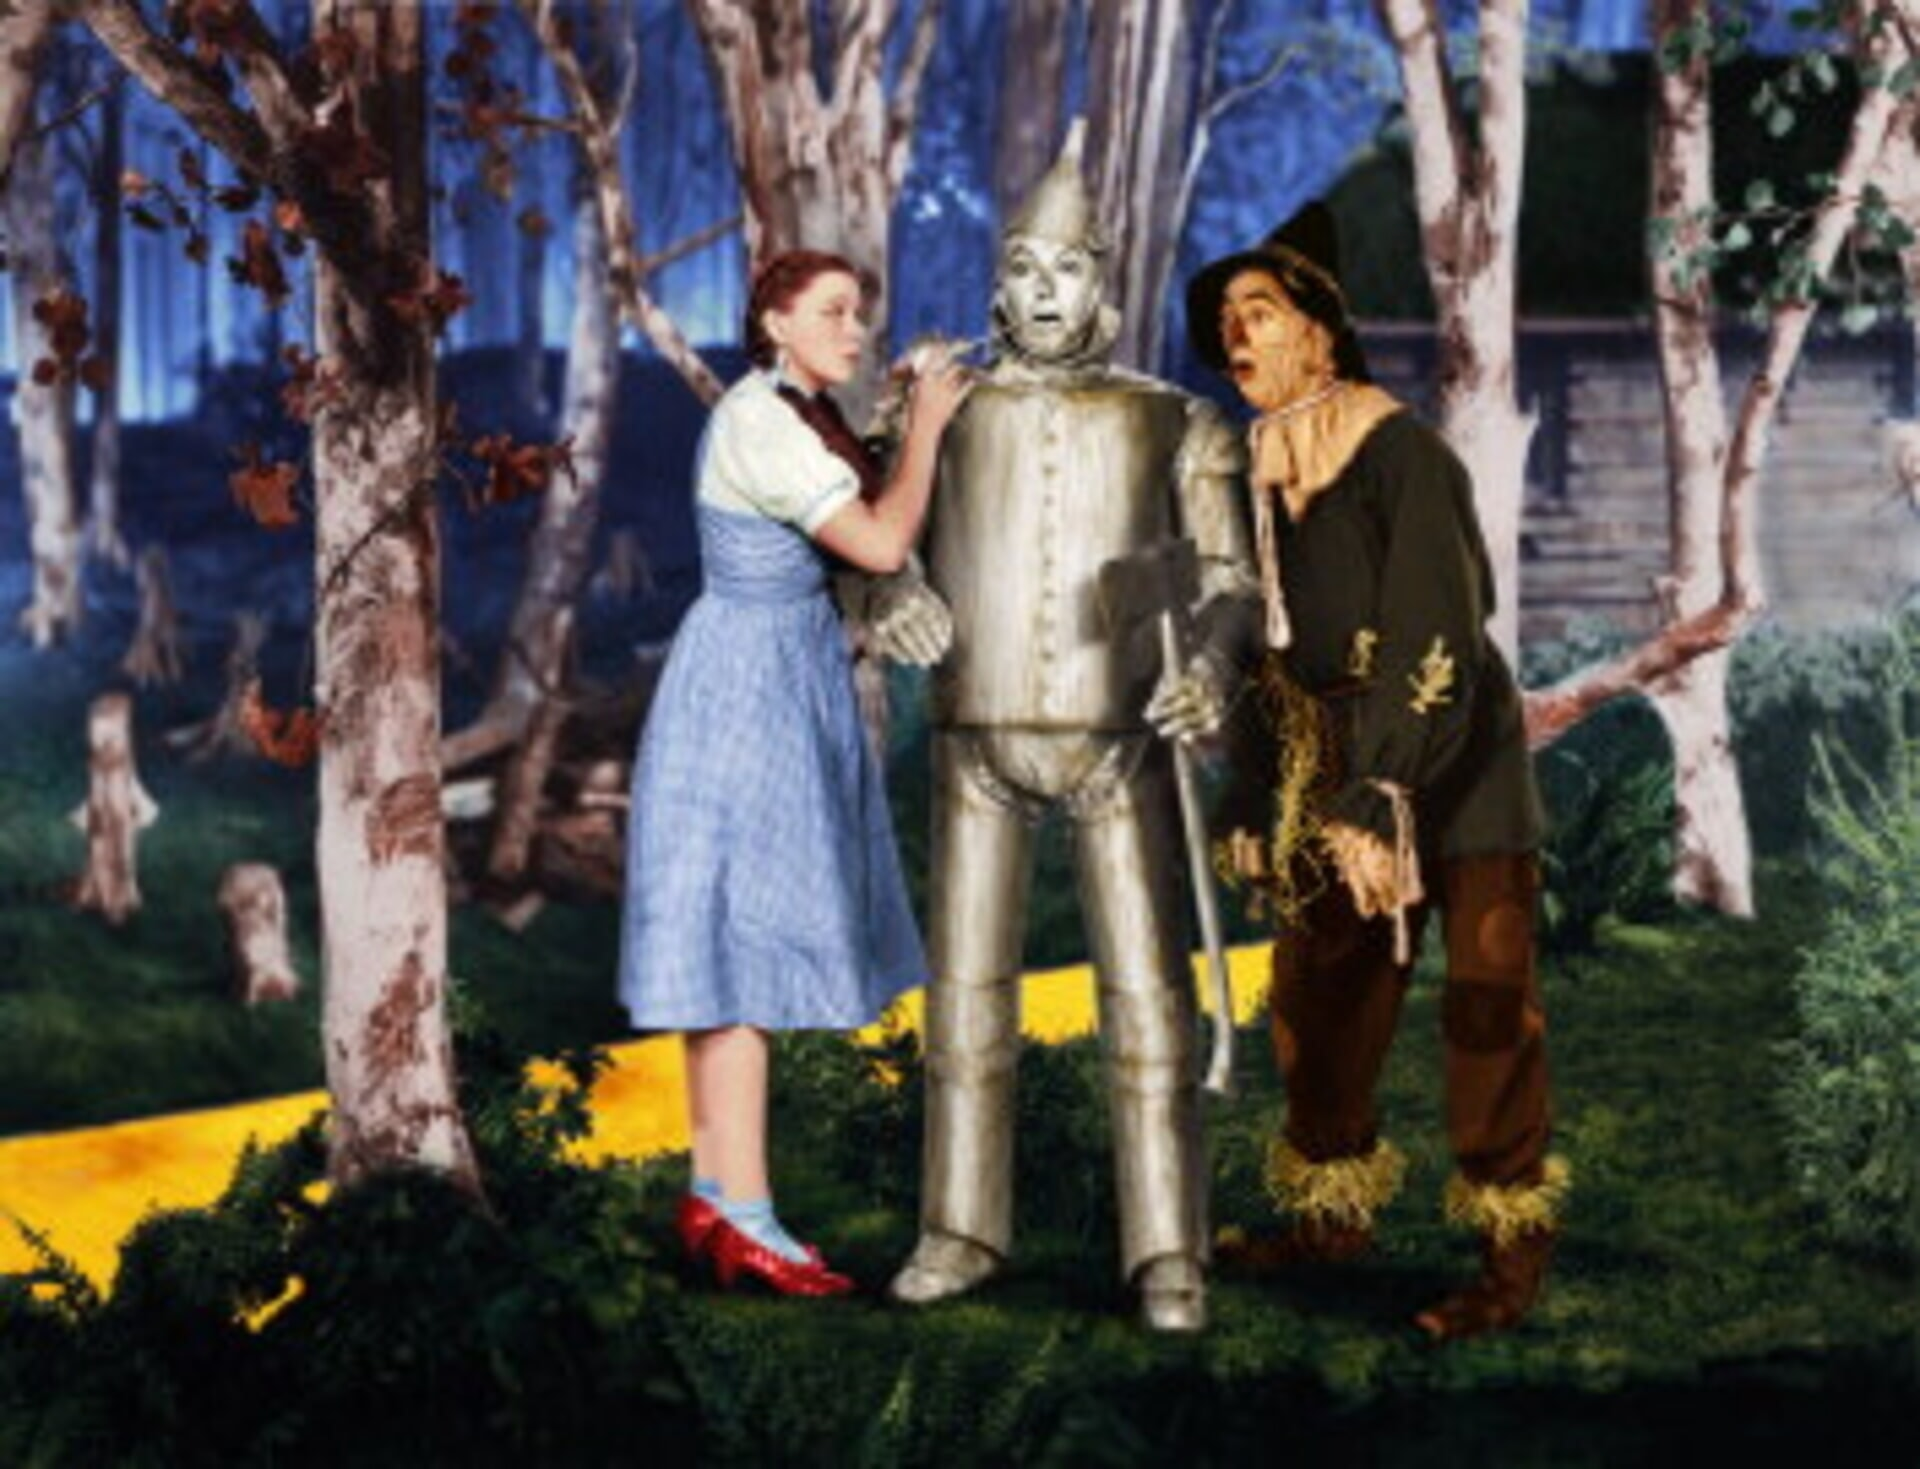 The Wizard of Oz - Image 4